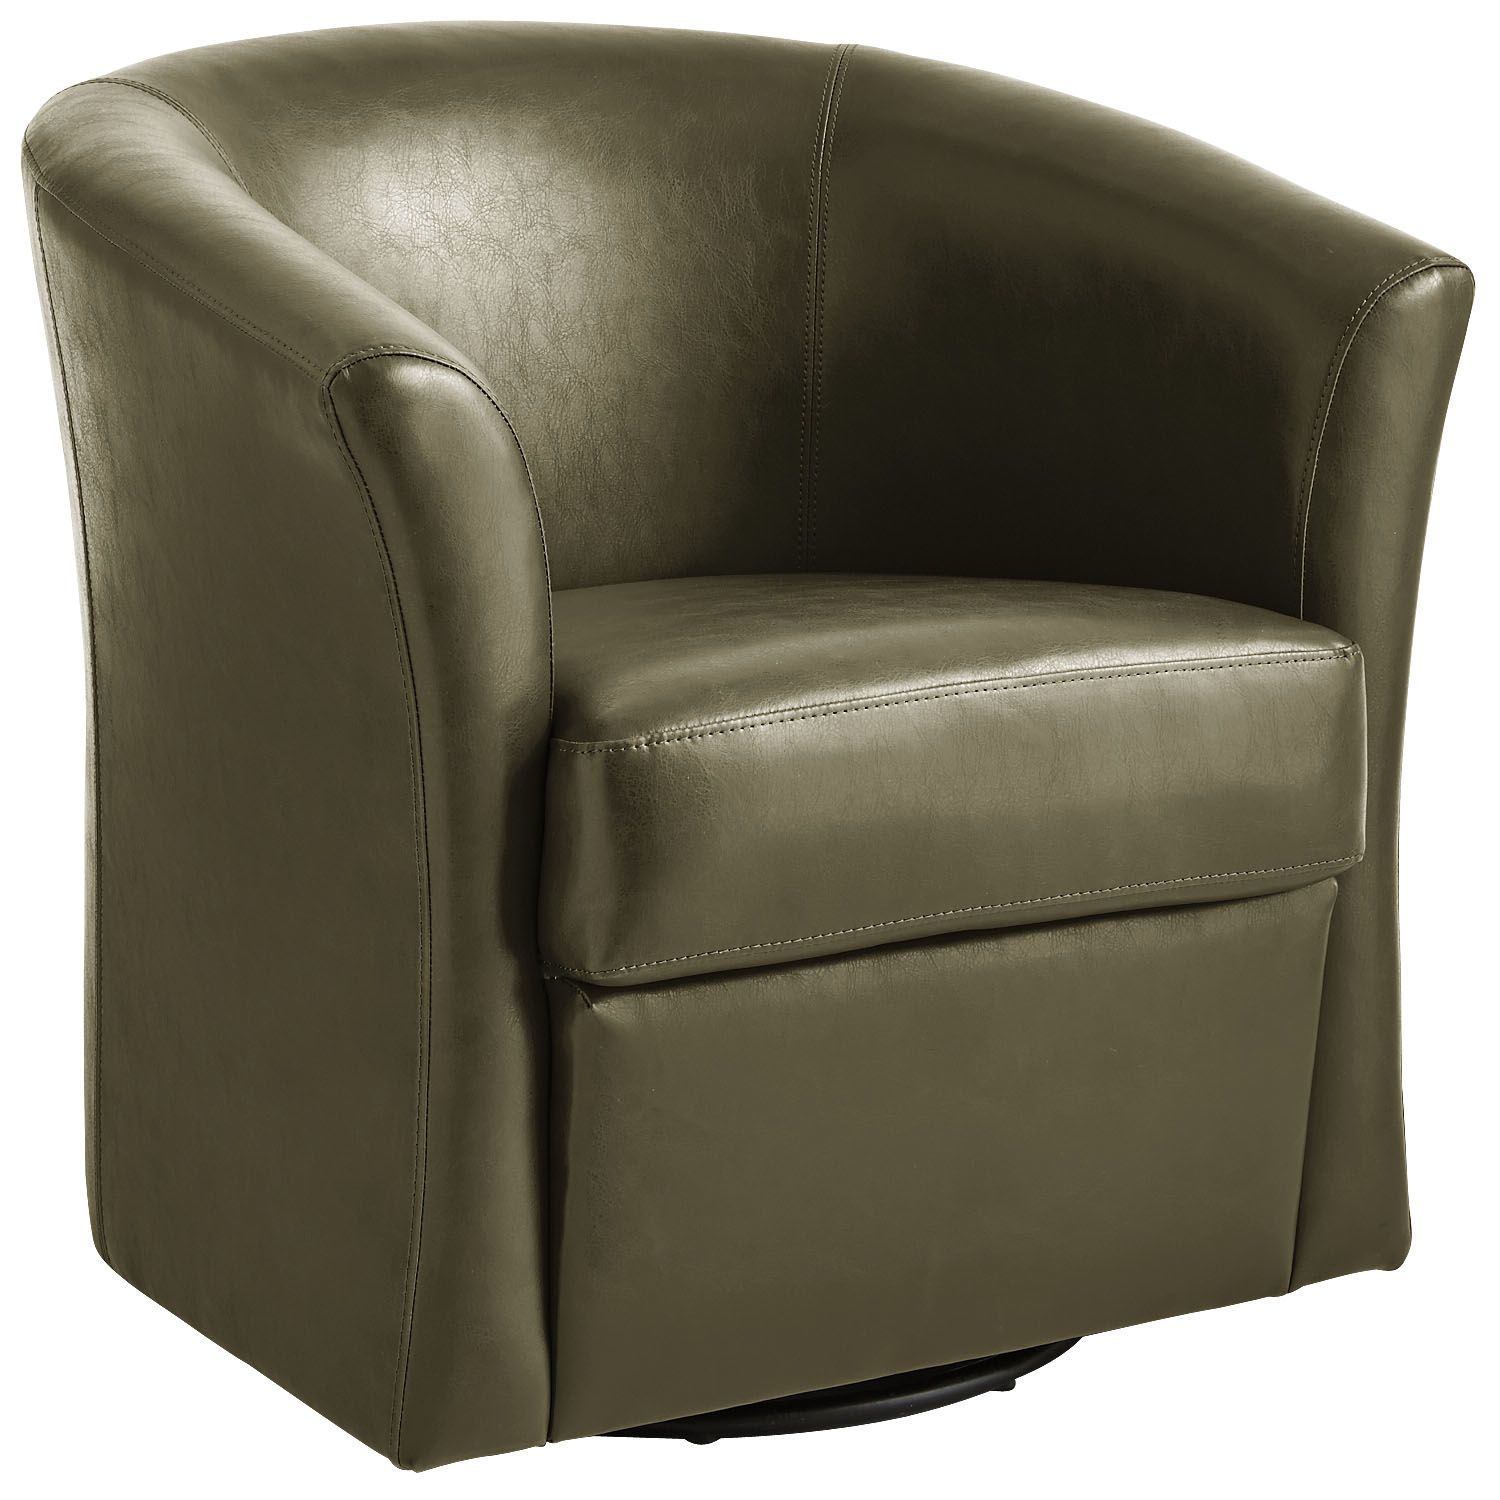 Isaac Swivel Chair Olive Pier 1 Imports 5900